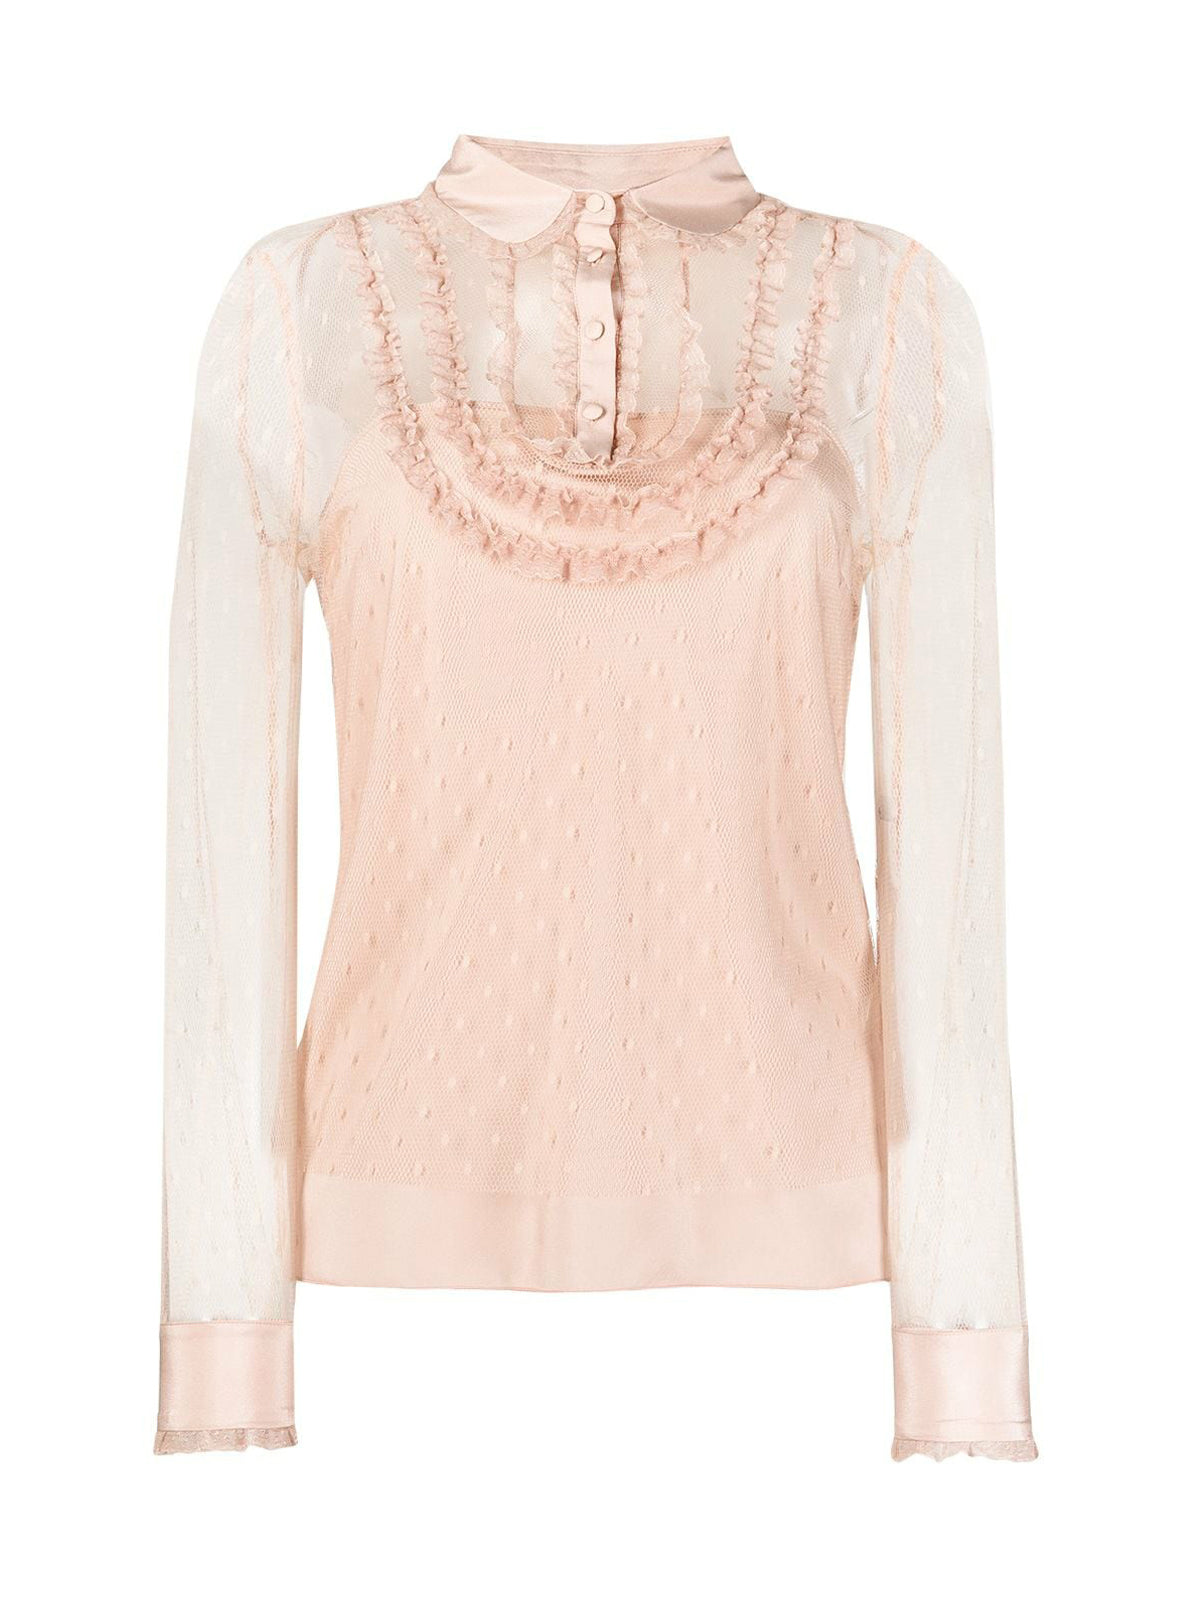 point d`esprit ruffled blouse